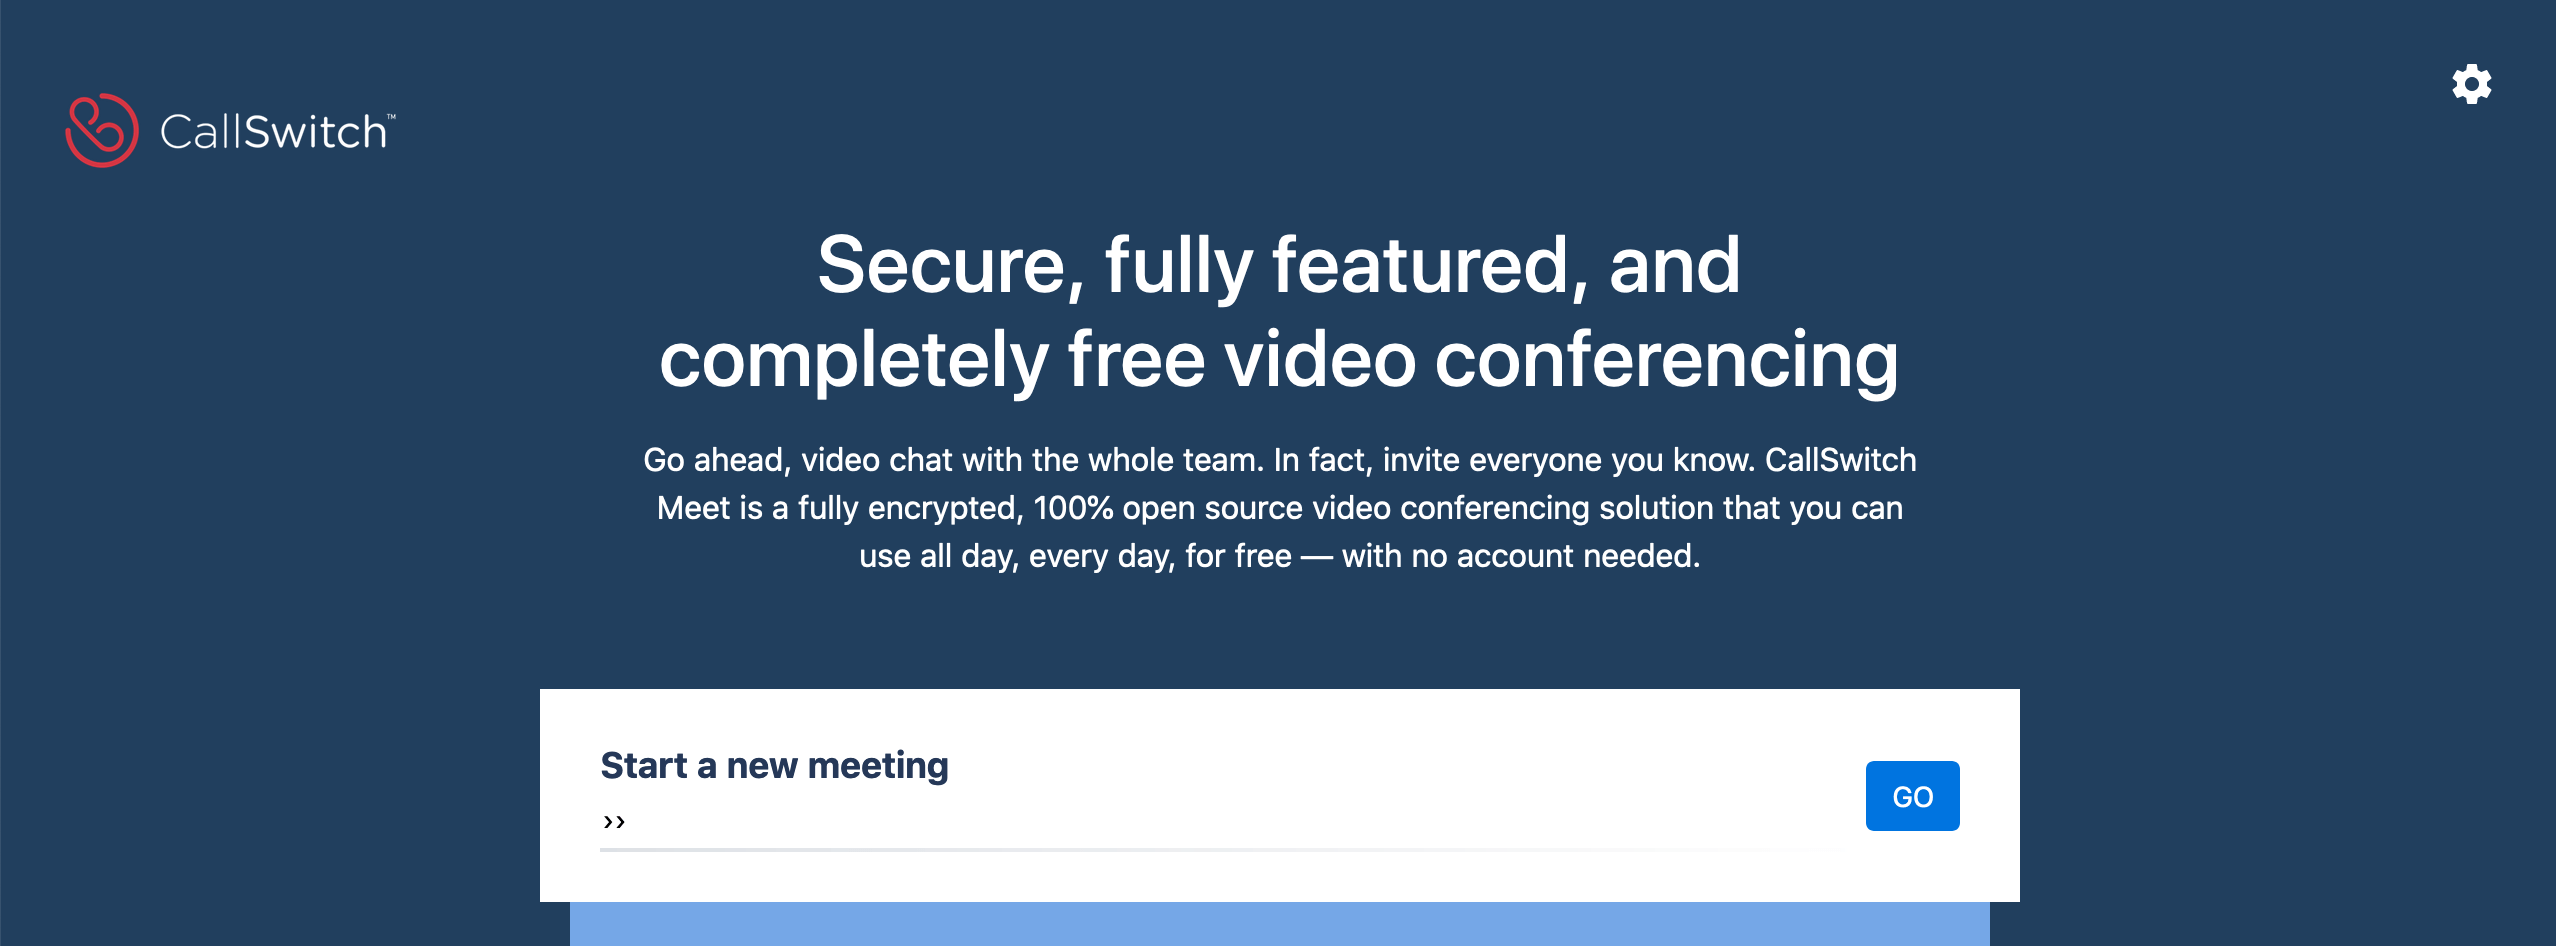 business video conferenceing in leeds, wetherby, york, harrogate and otley